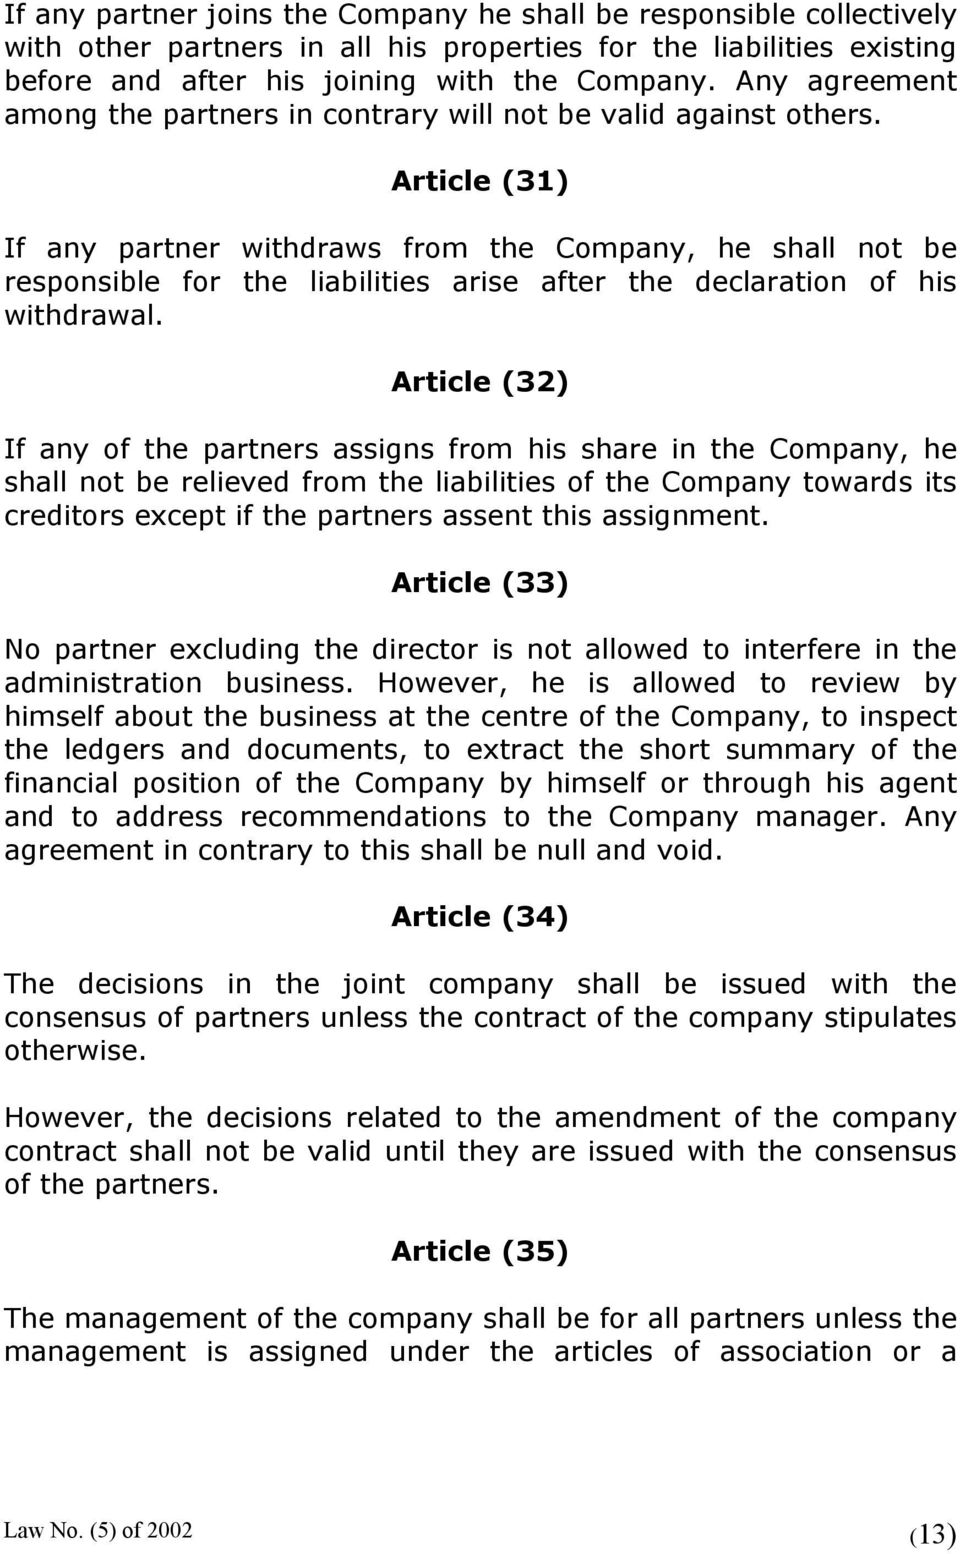 Article (31) If any partner withdraws from the Company, he shall not be responsible for the liabilities arise after the declaration of his withdrawal.